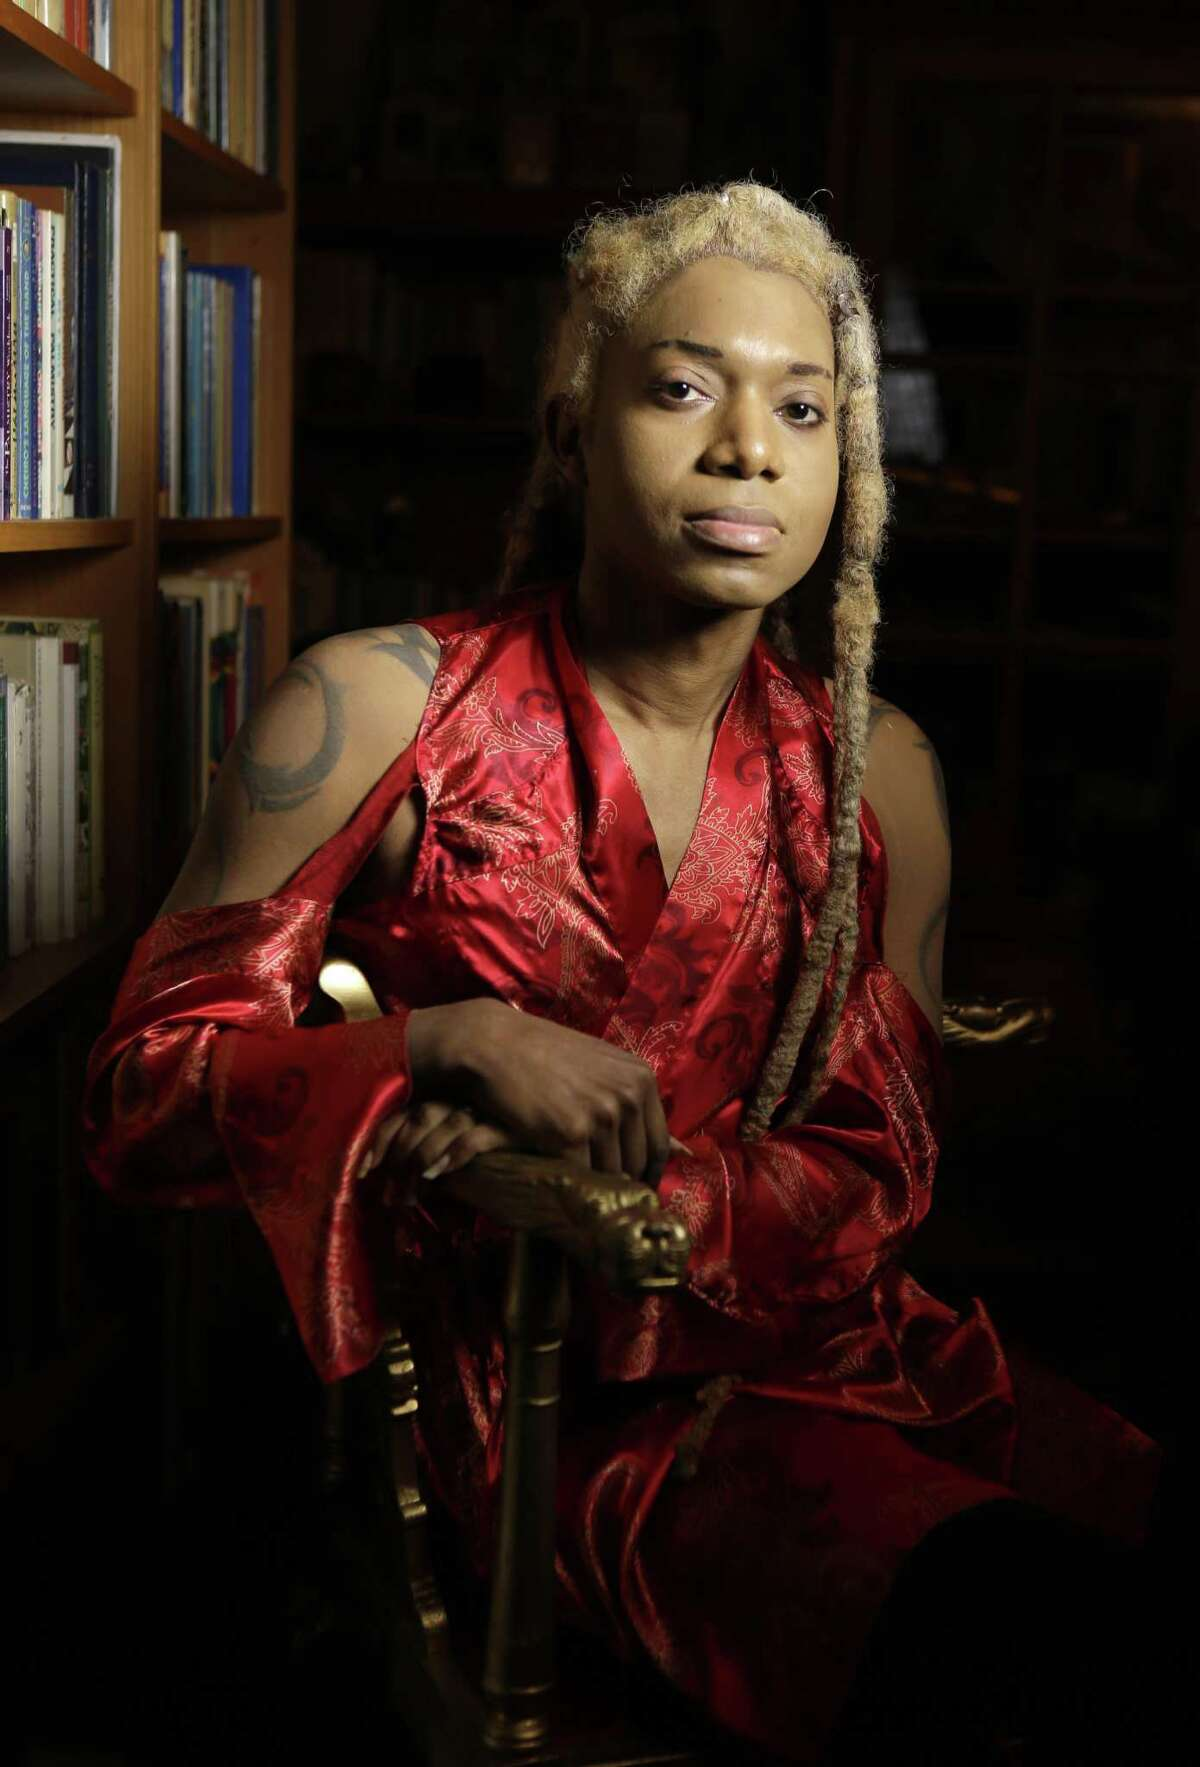 Tarik Rever is shown Sunday, Nov. 4, 2018, in Kingwood. He is a former dancer whose health issues forced him to stop. But he's still active in the community by helping non-profit organizations who provide shelter or aid to Houston's trans community.